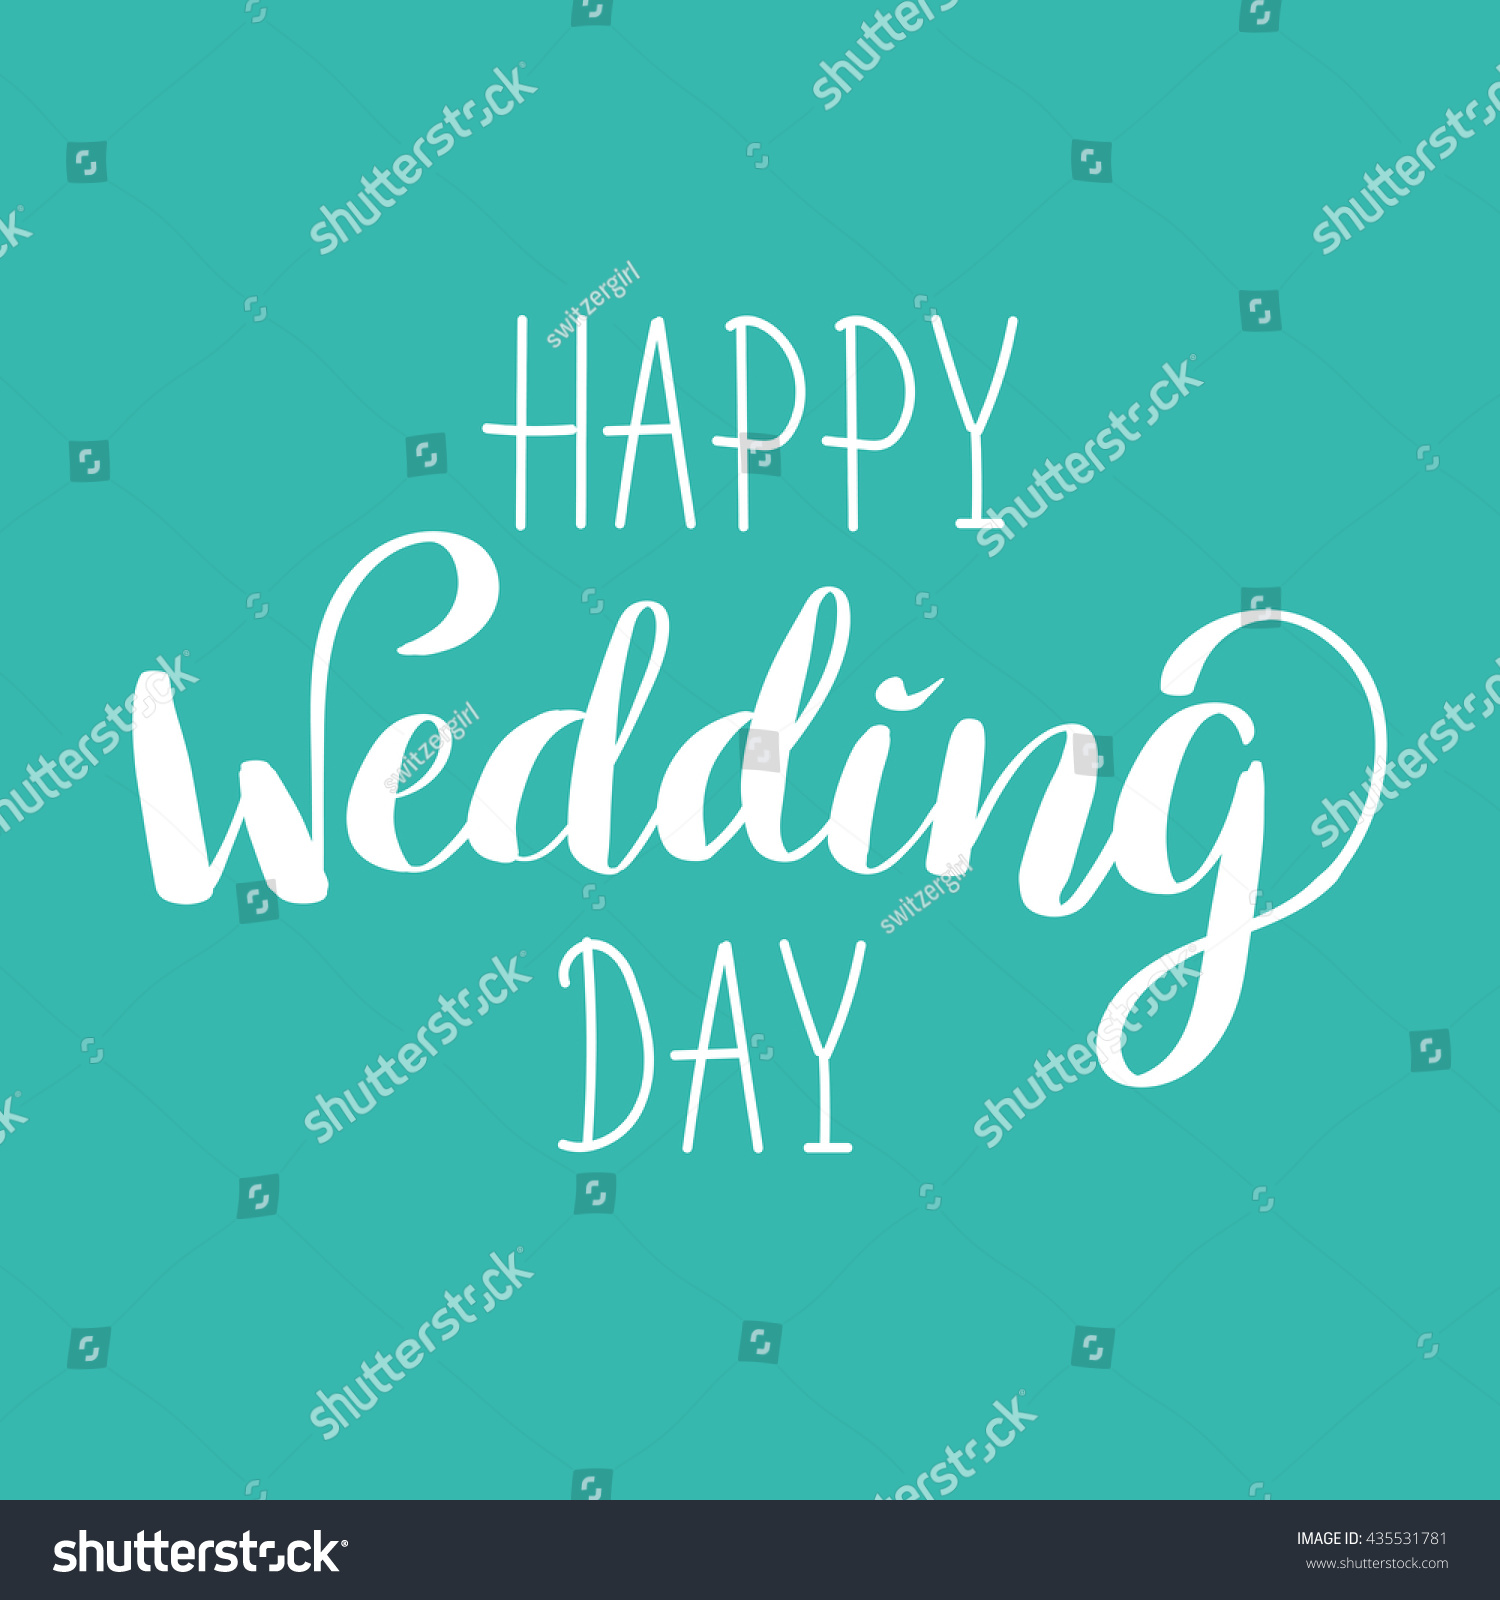 Happy Wedding Day Handlettered Sign Calligraphy Stock Vector